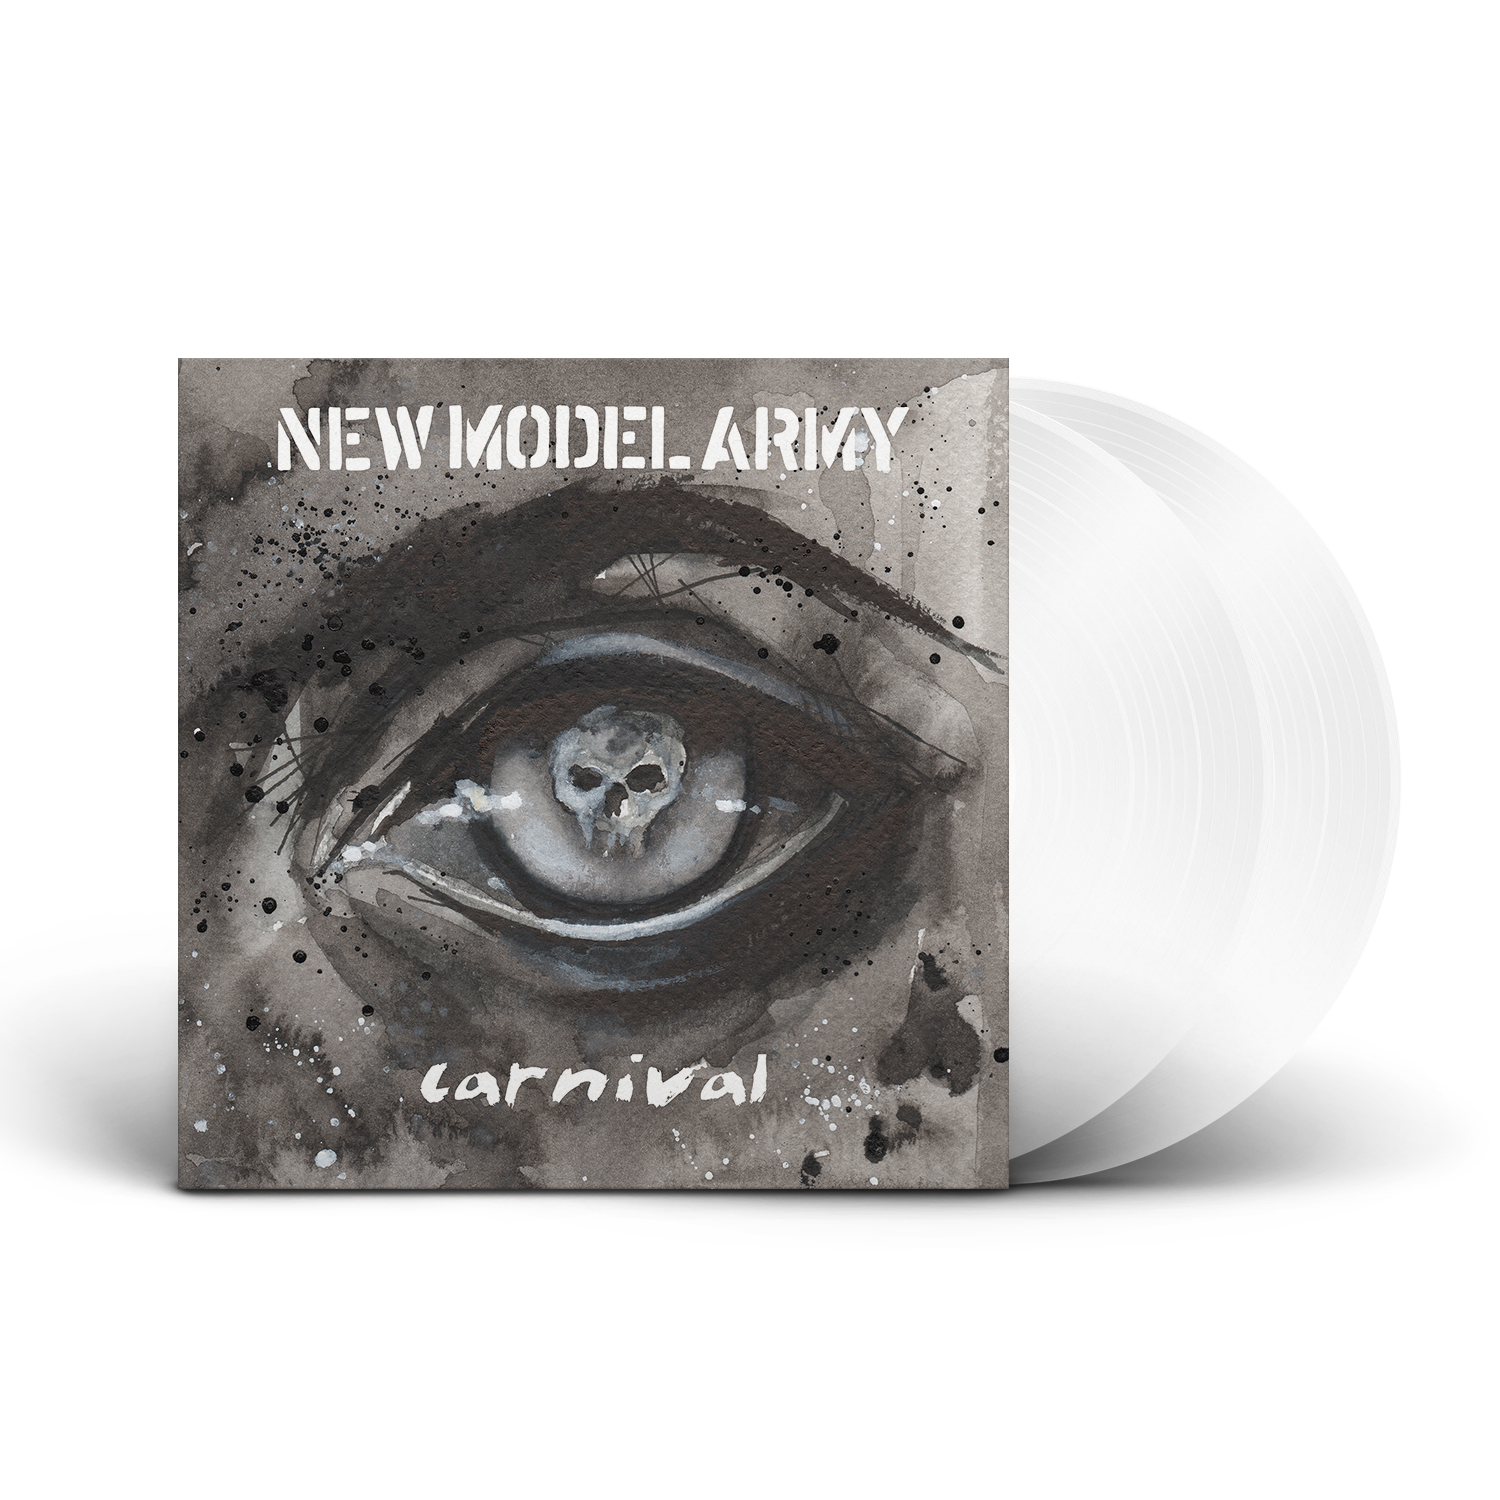 New Model Army - Carnival Limited Edition White Vinyl